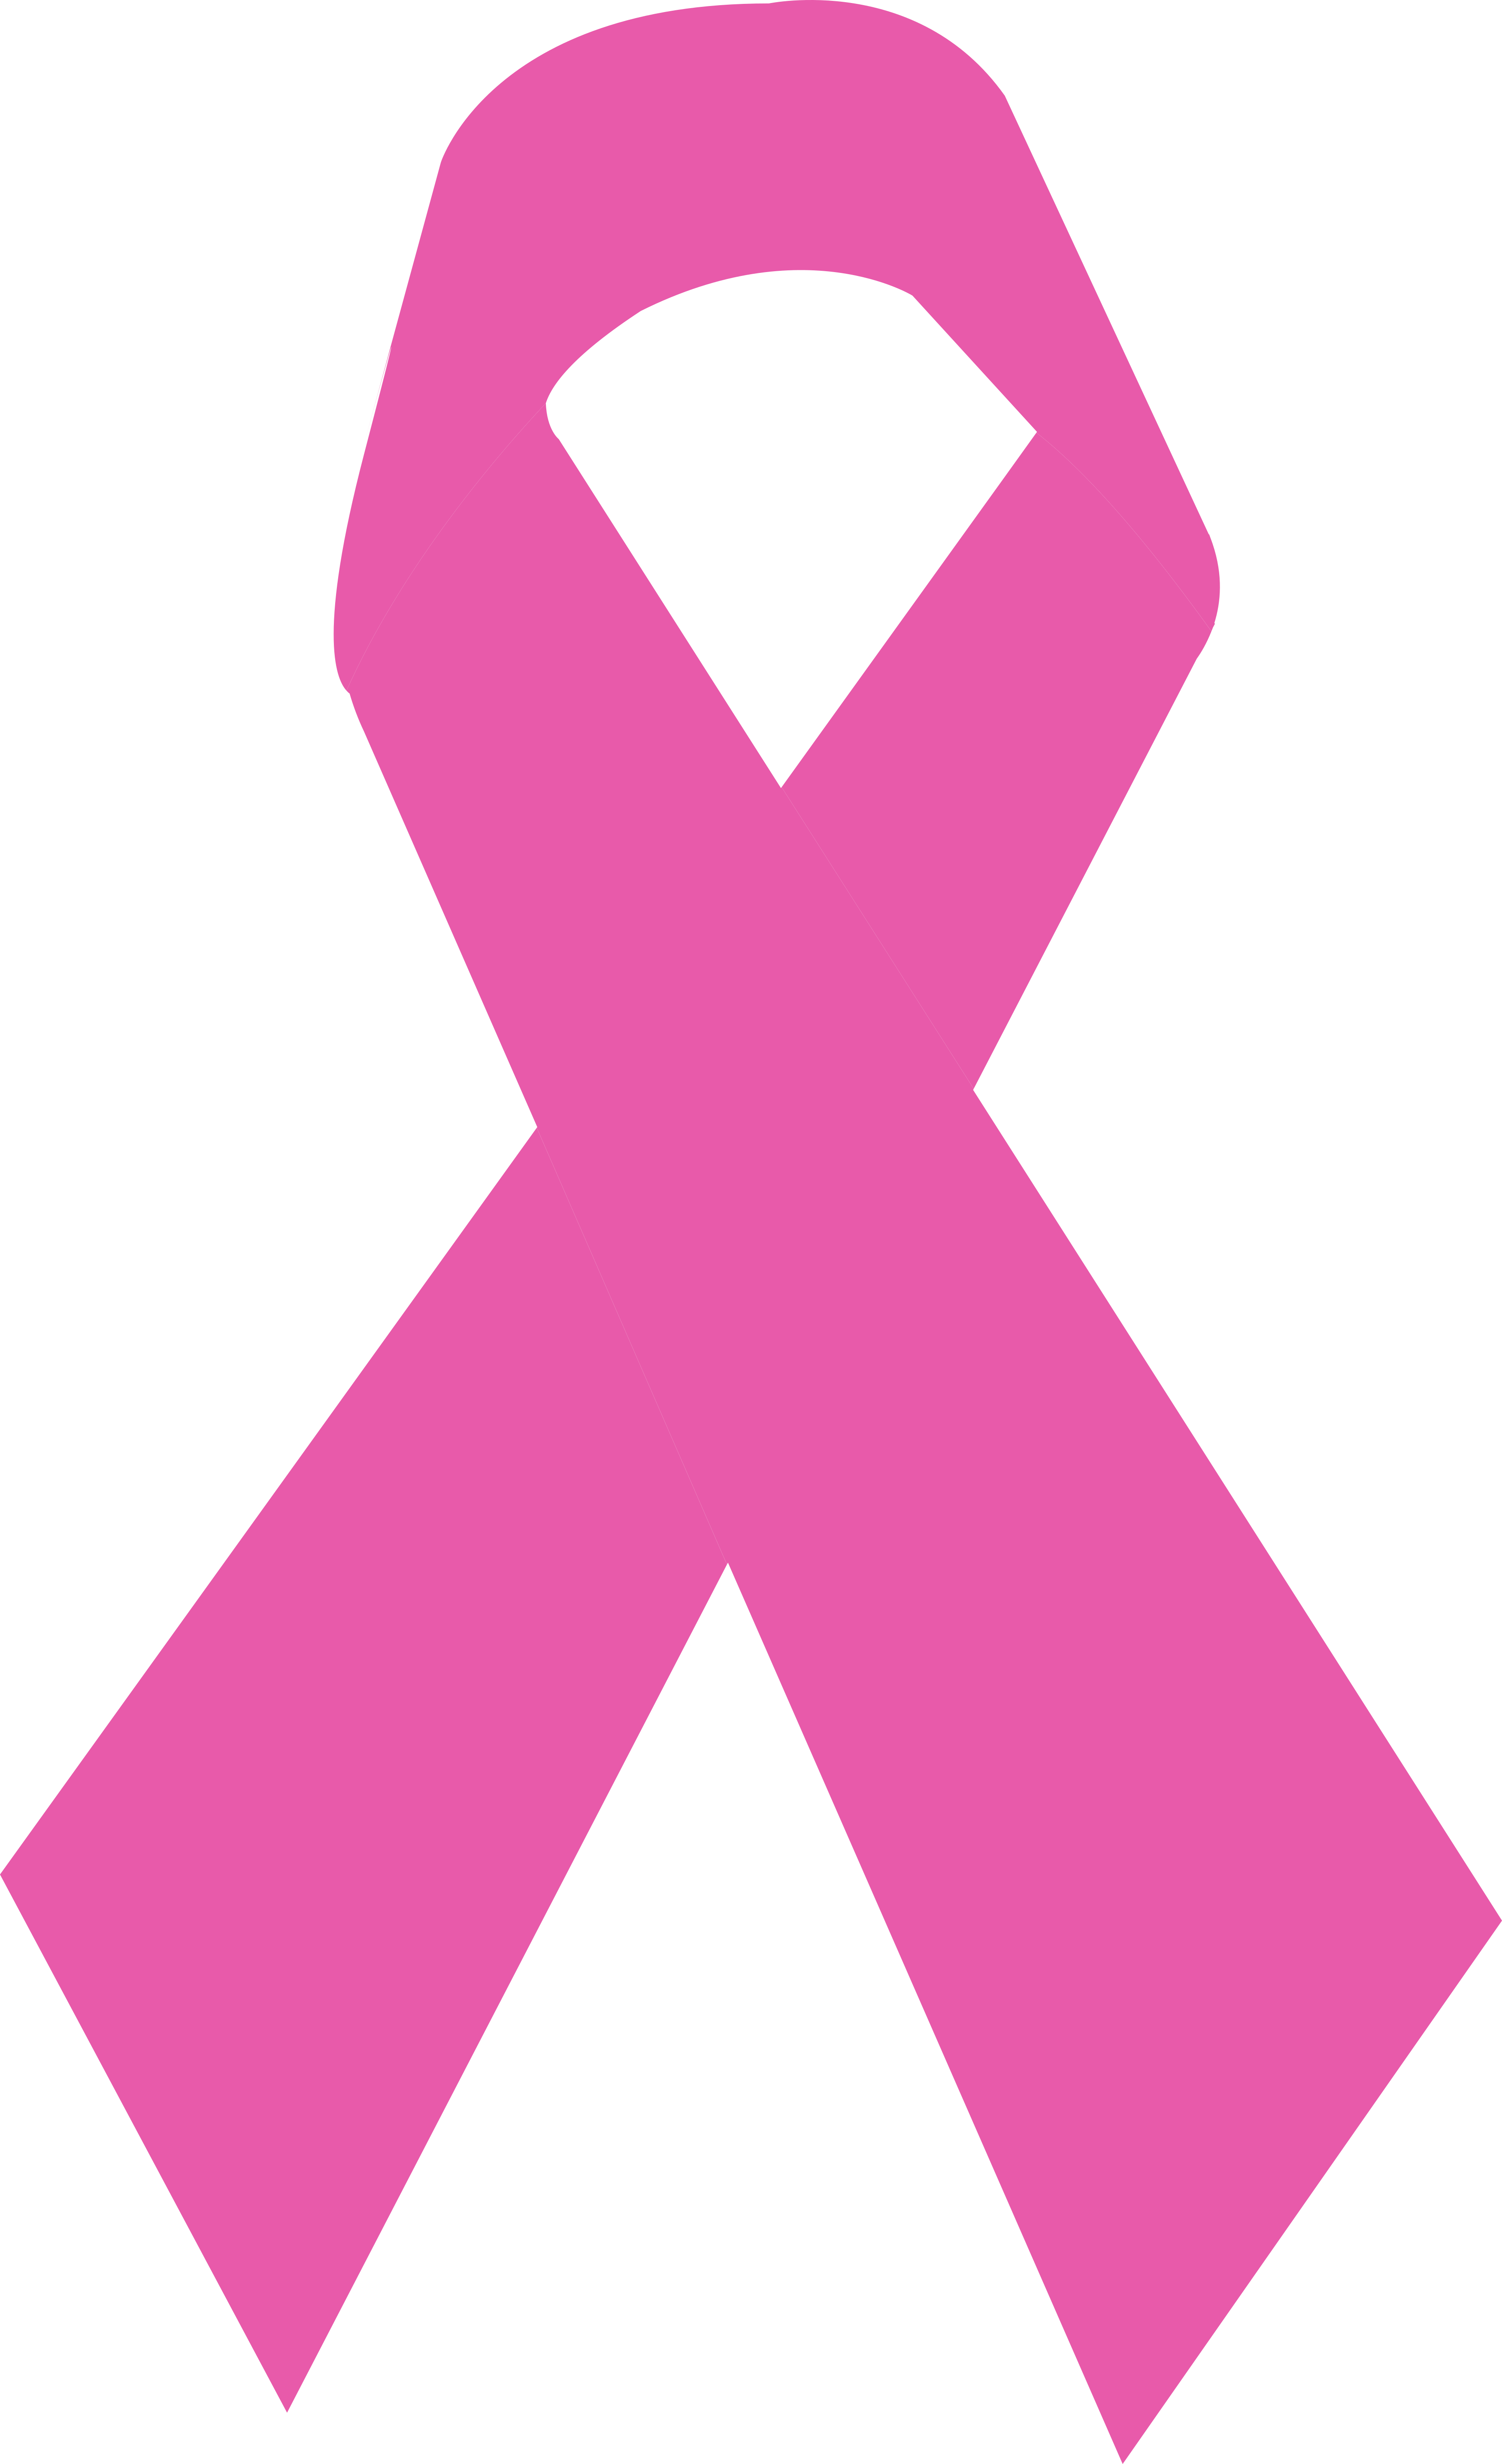 Cancer de mama simbolo clipart images gallery for free.